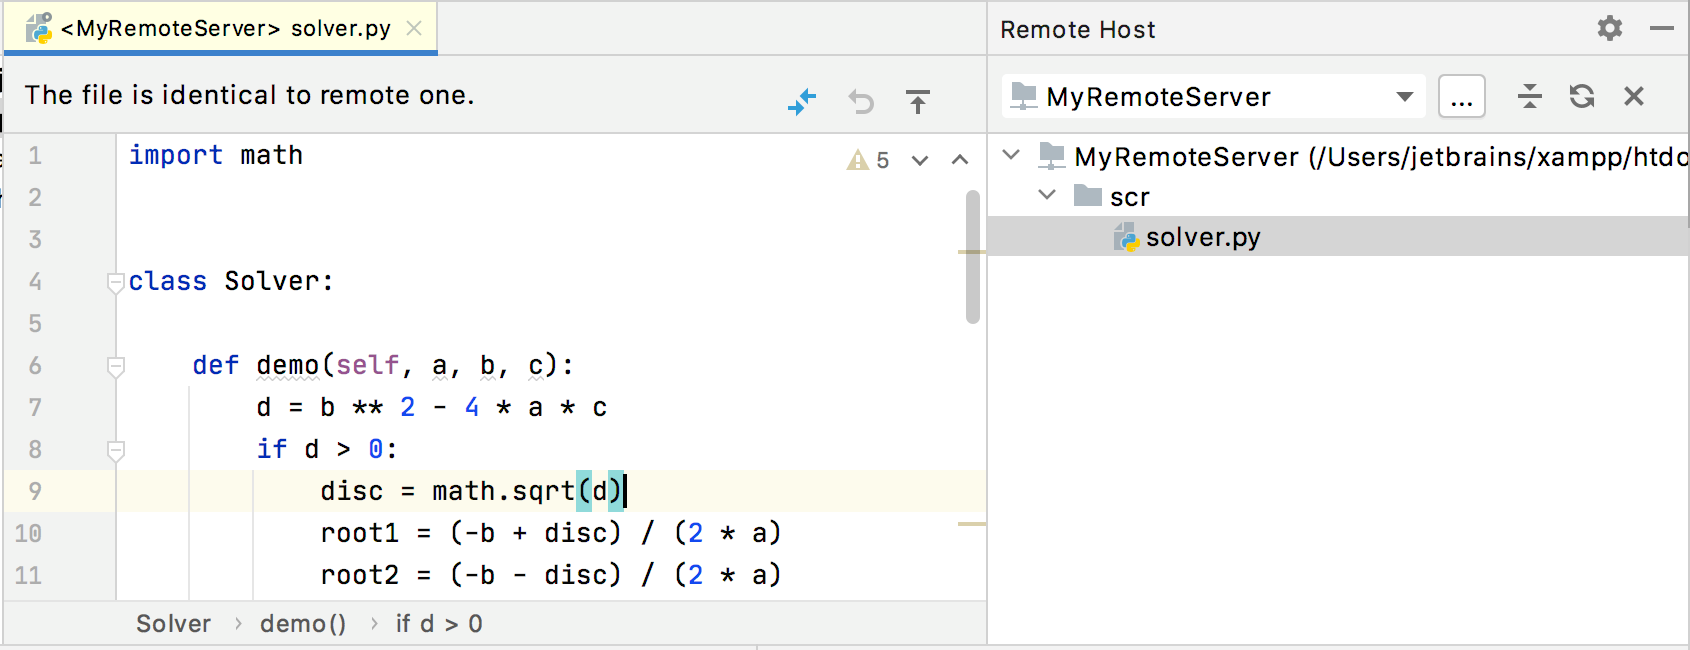 Editing a file on remote host